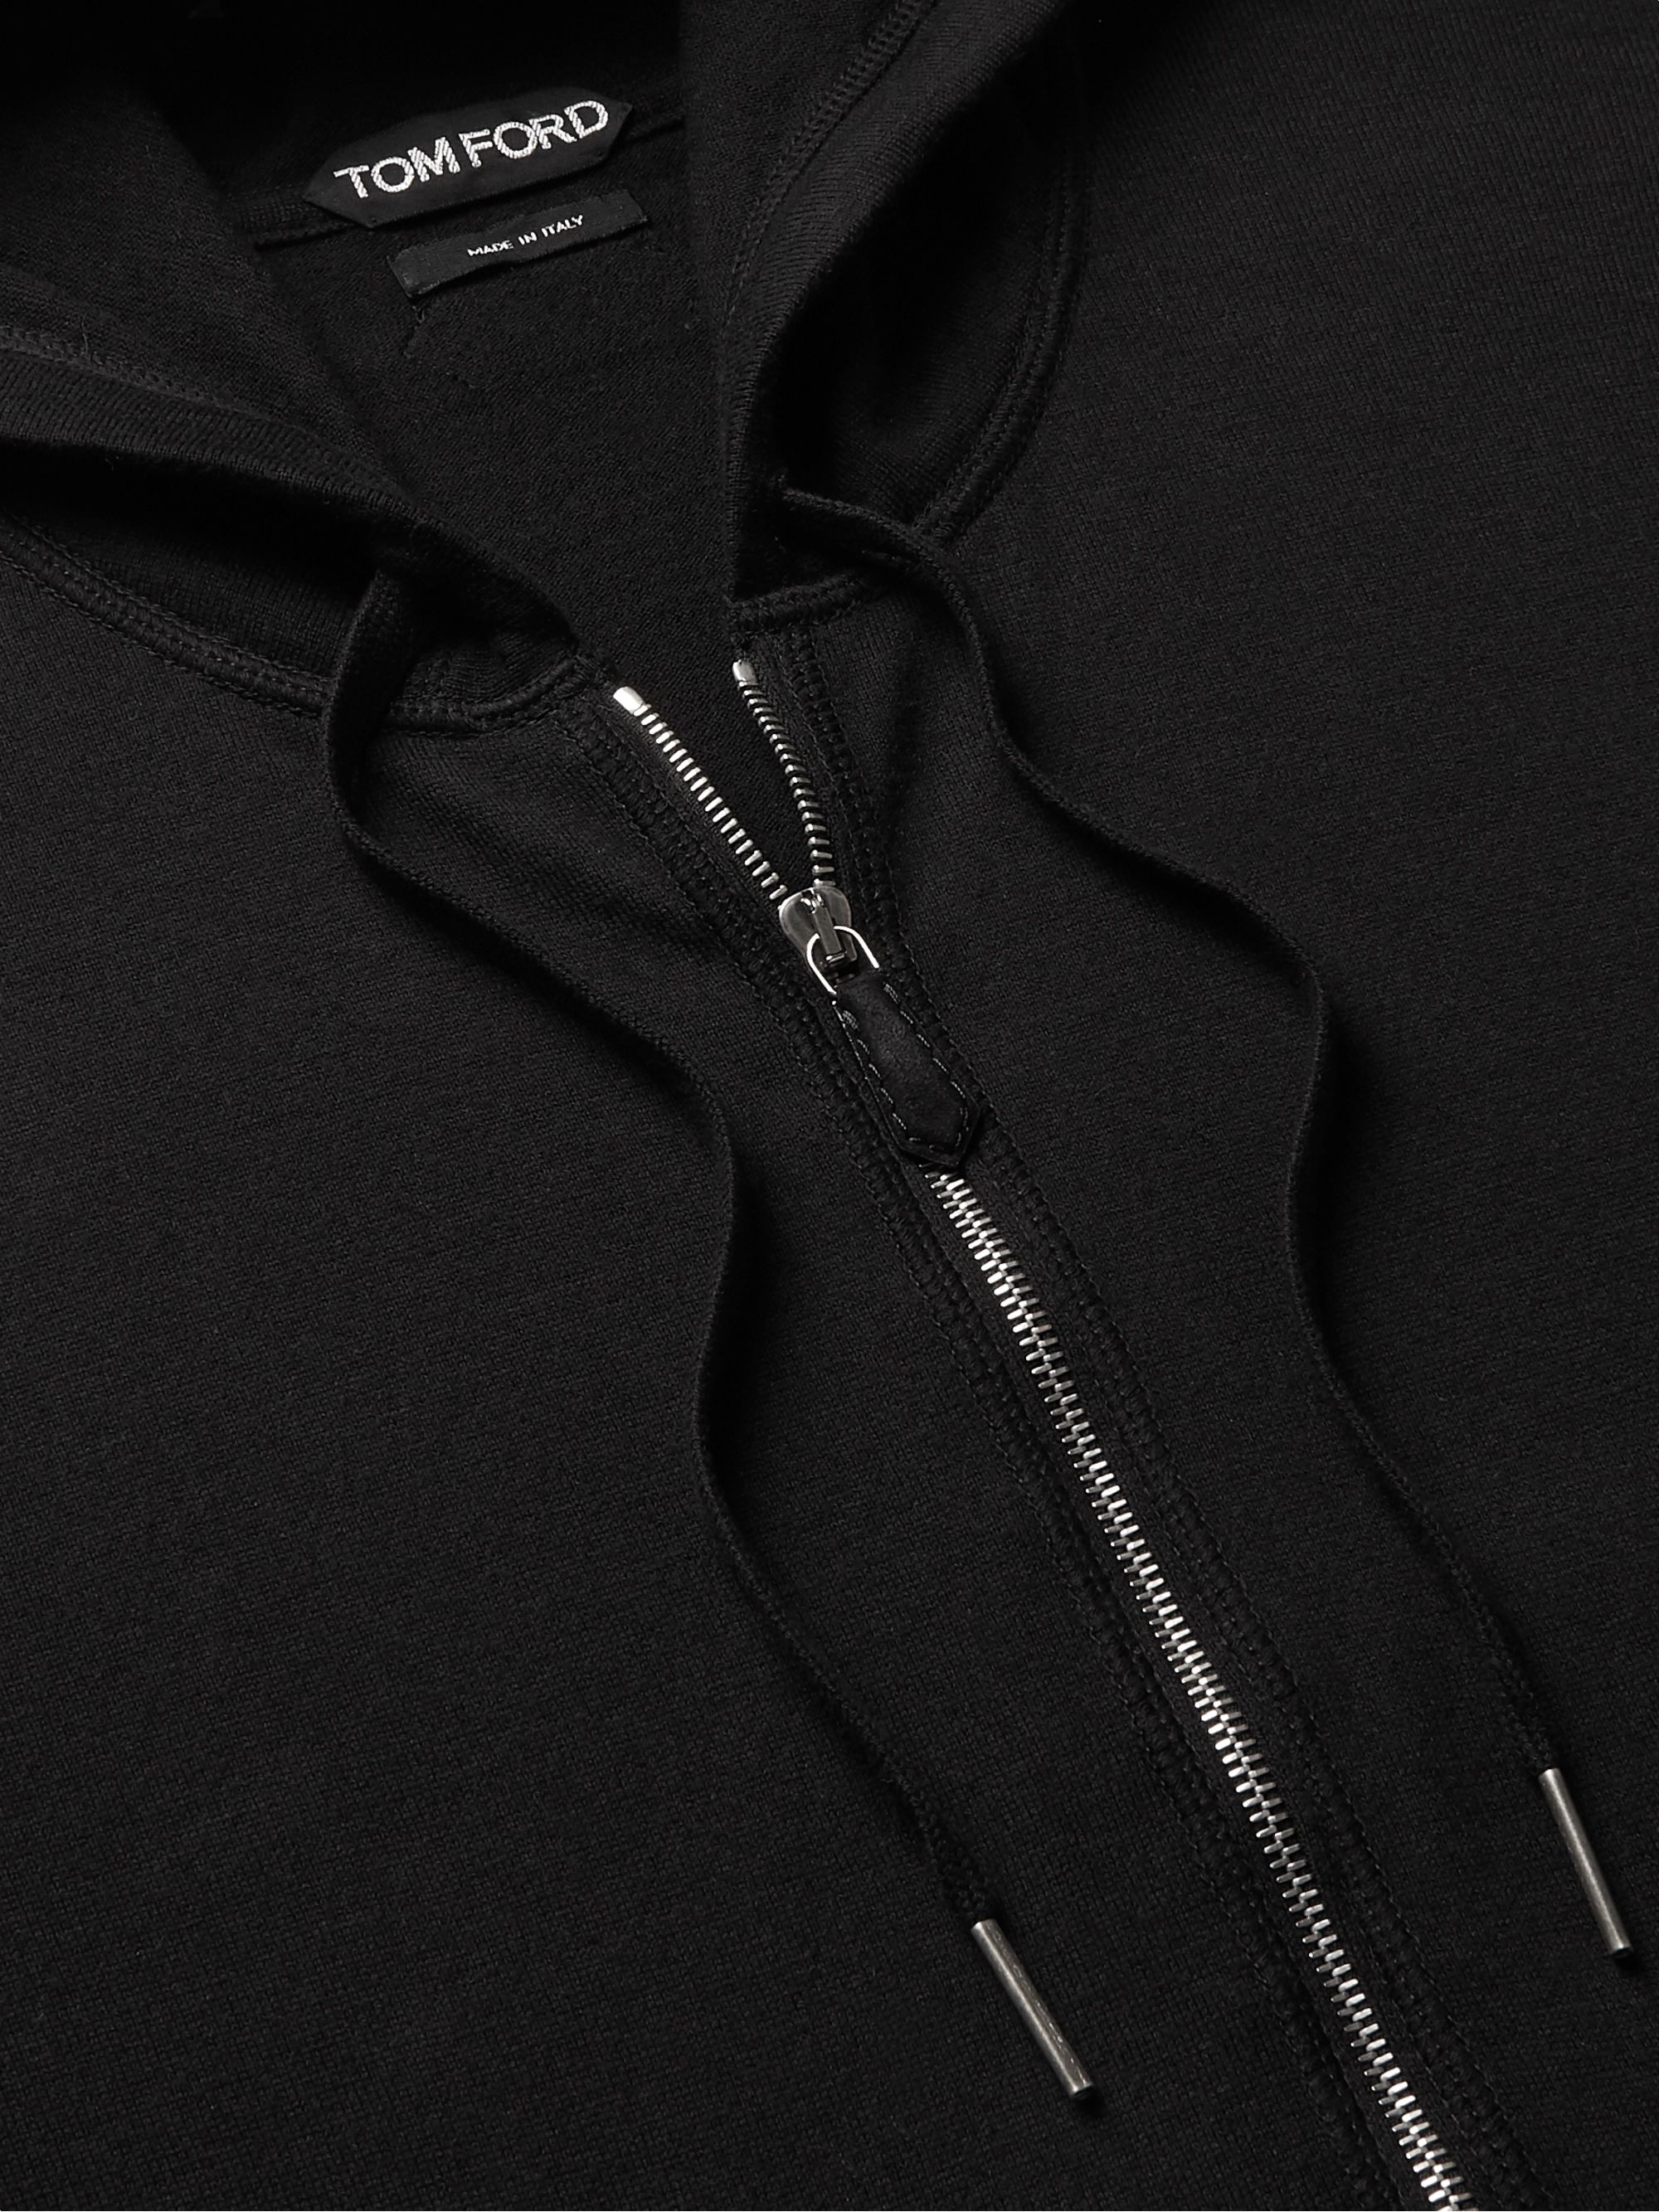 TOM FORD Slim-Fit Cotton, Silk and Cashmere-Blend Zip-Up Hoodie